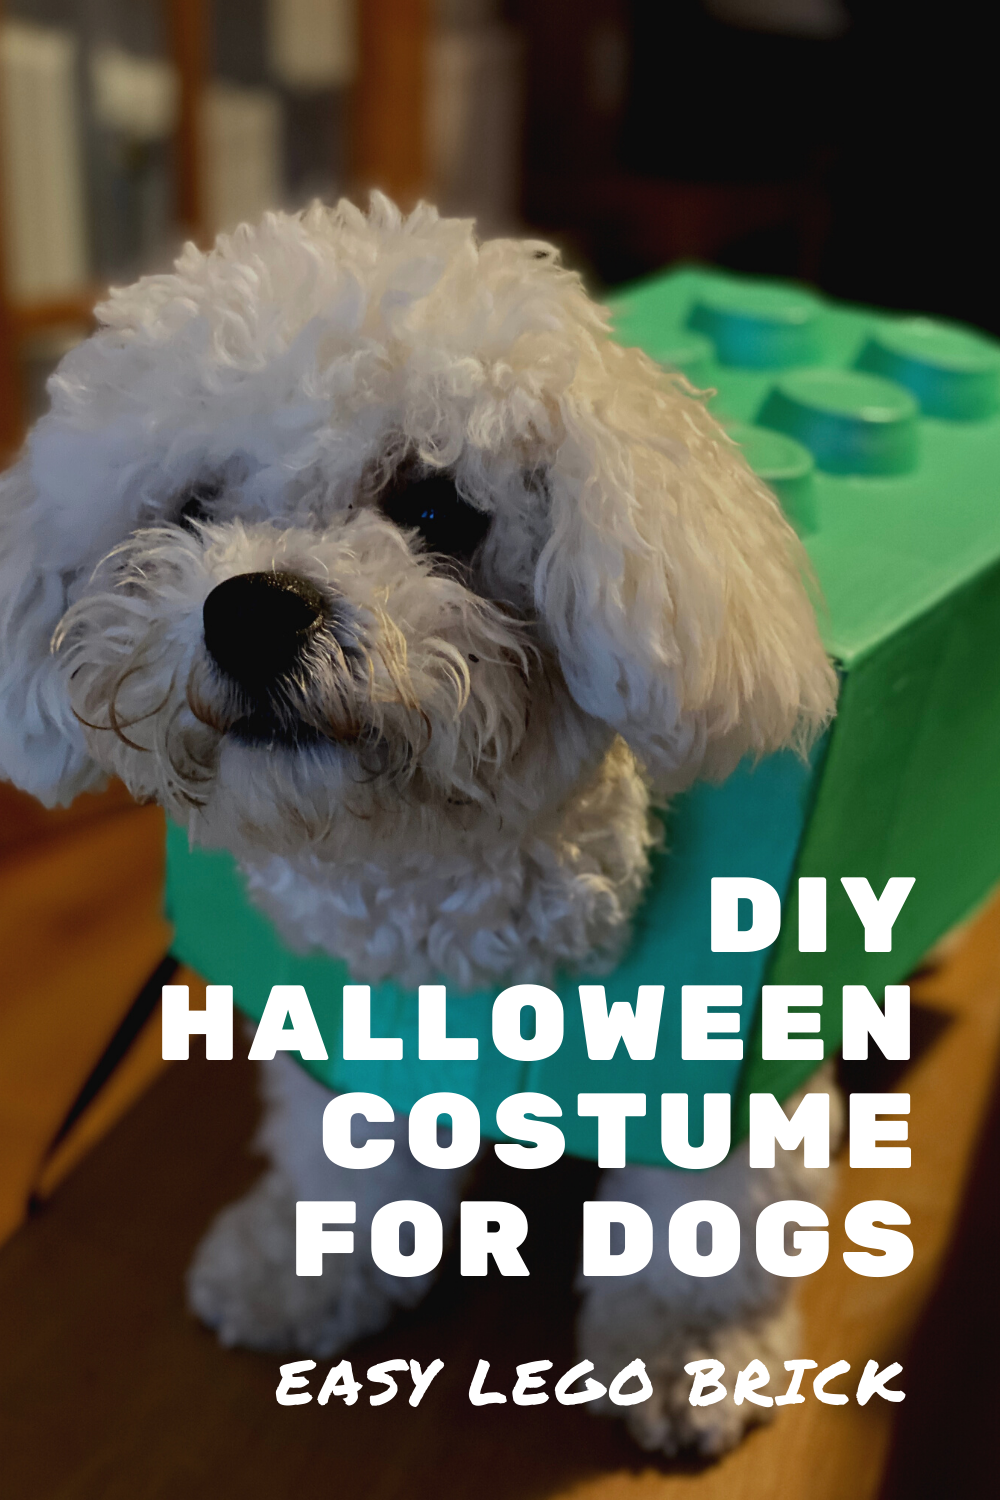 How to make a lego brick Halloween costume for dogs